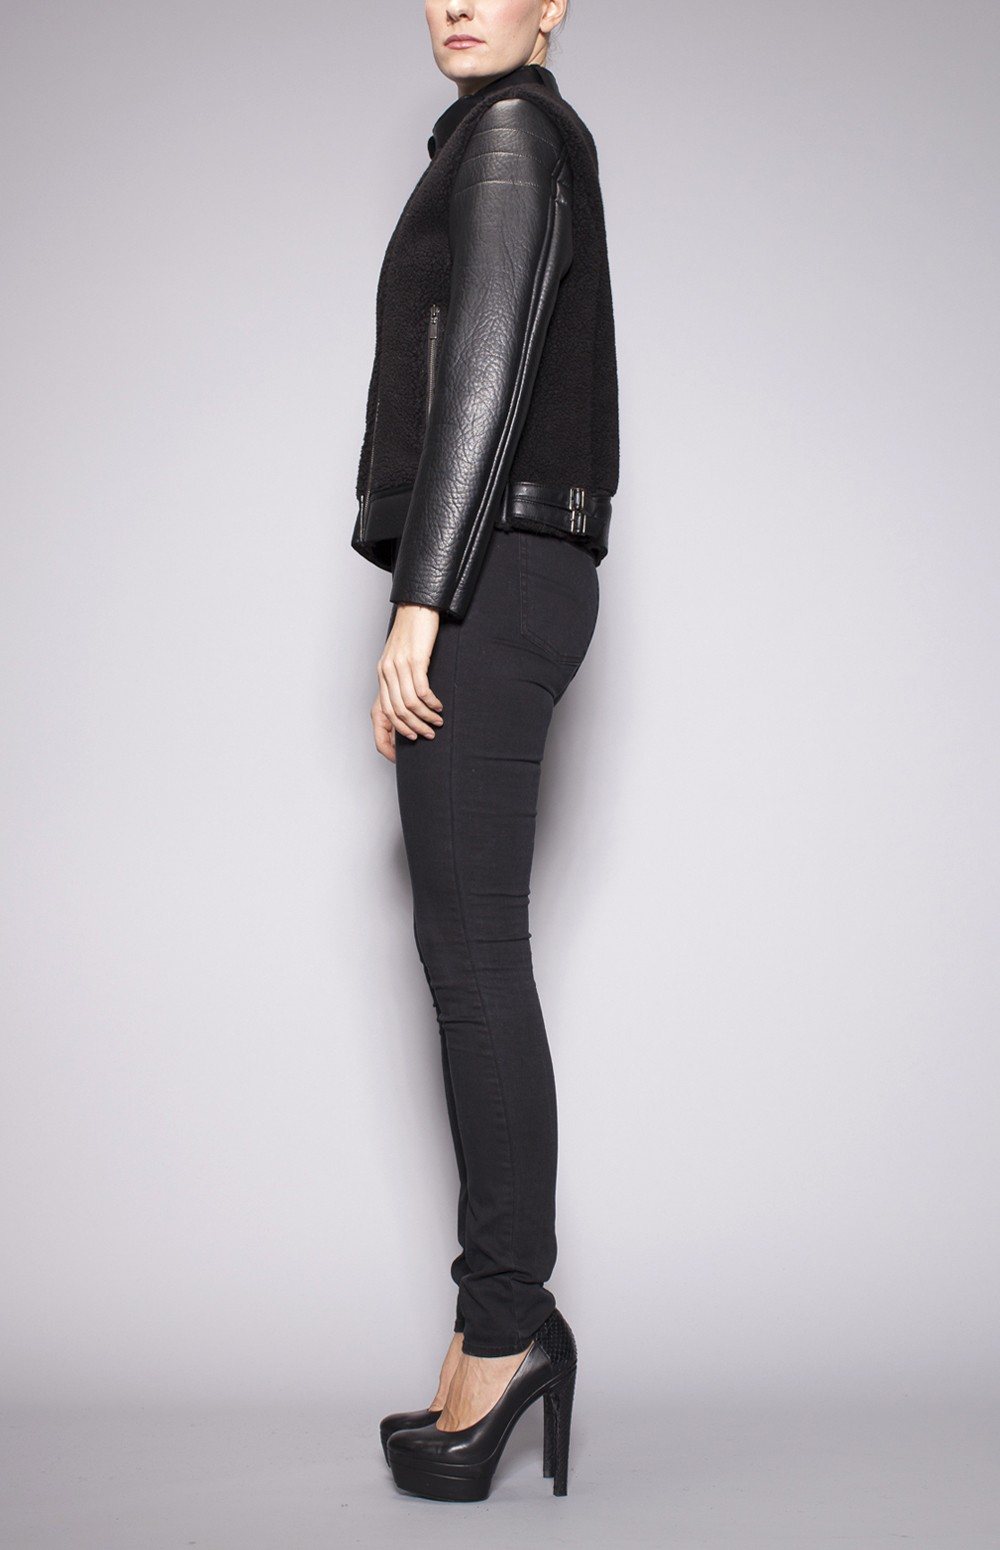 Lxls collection – outerwear by lxls luxury outlet